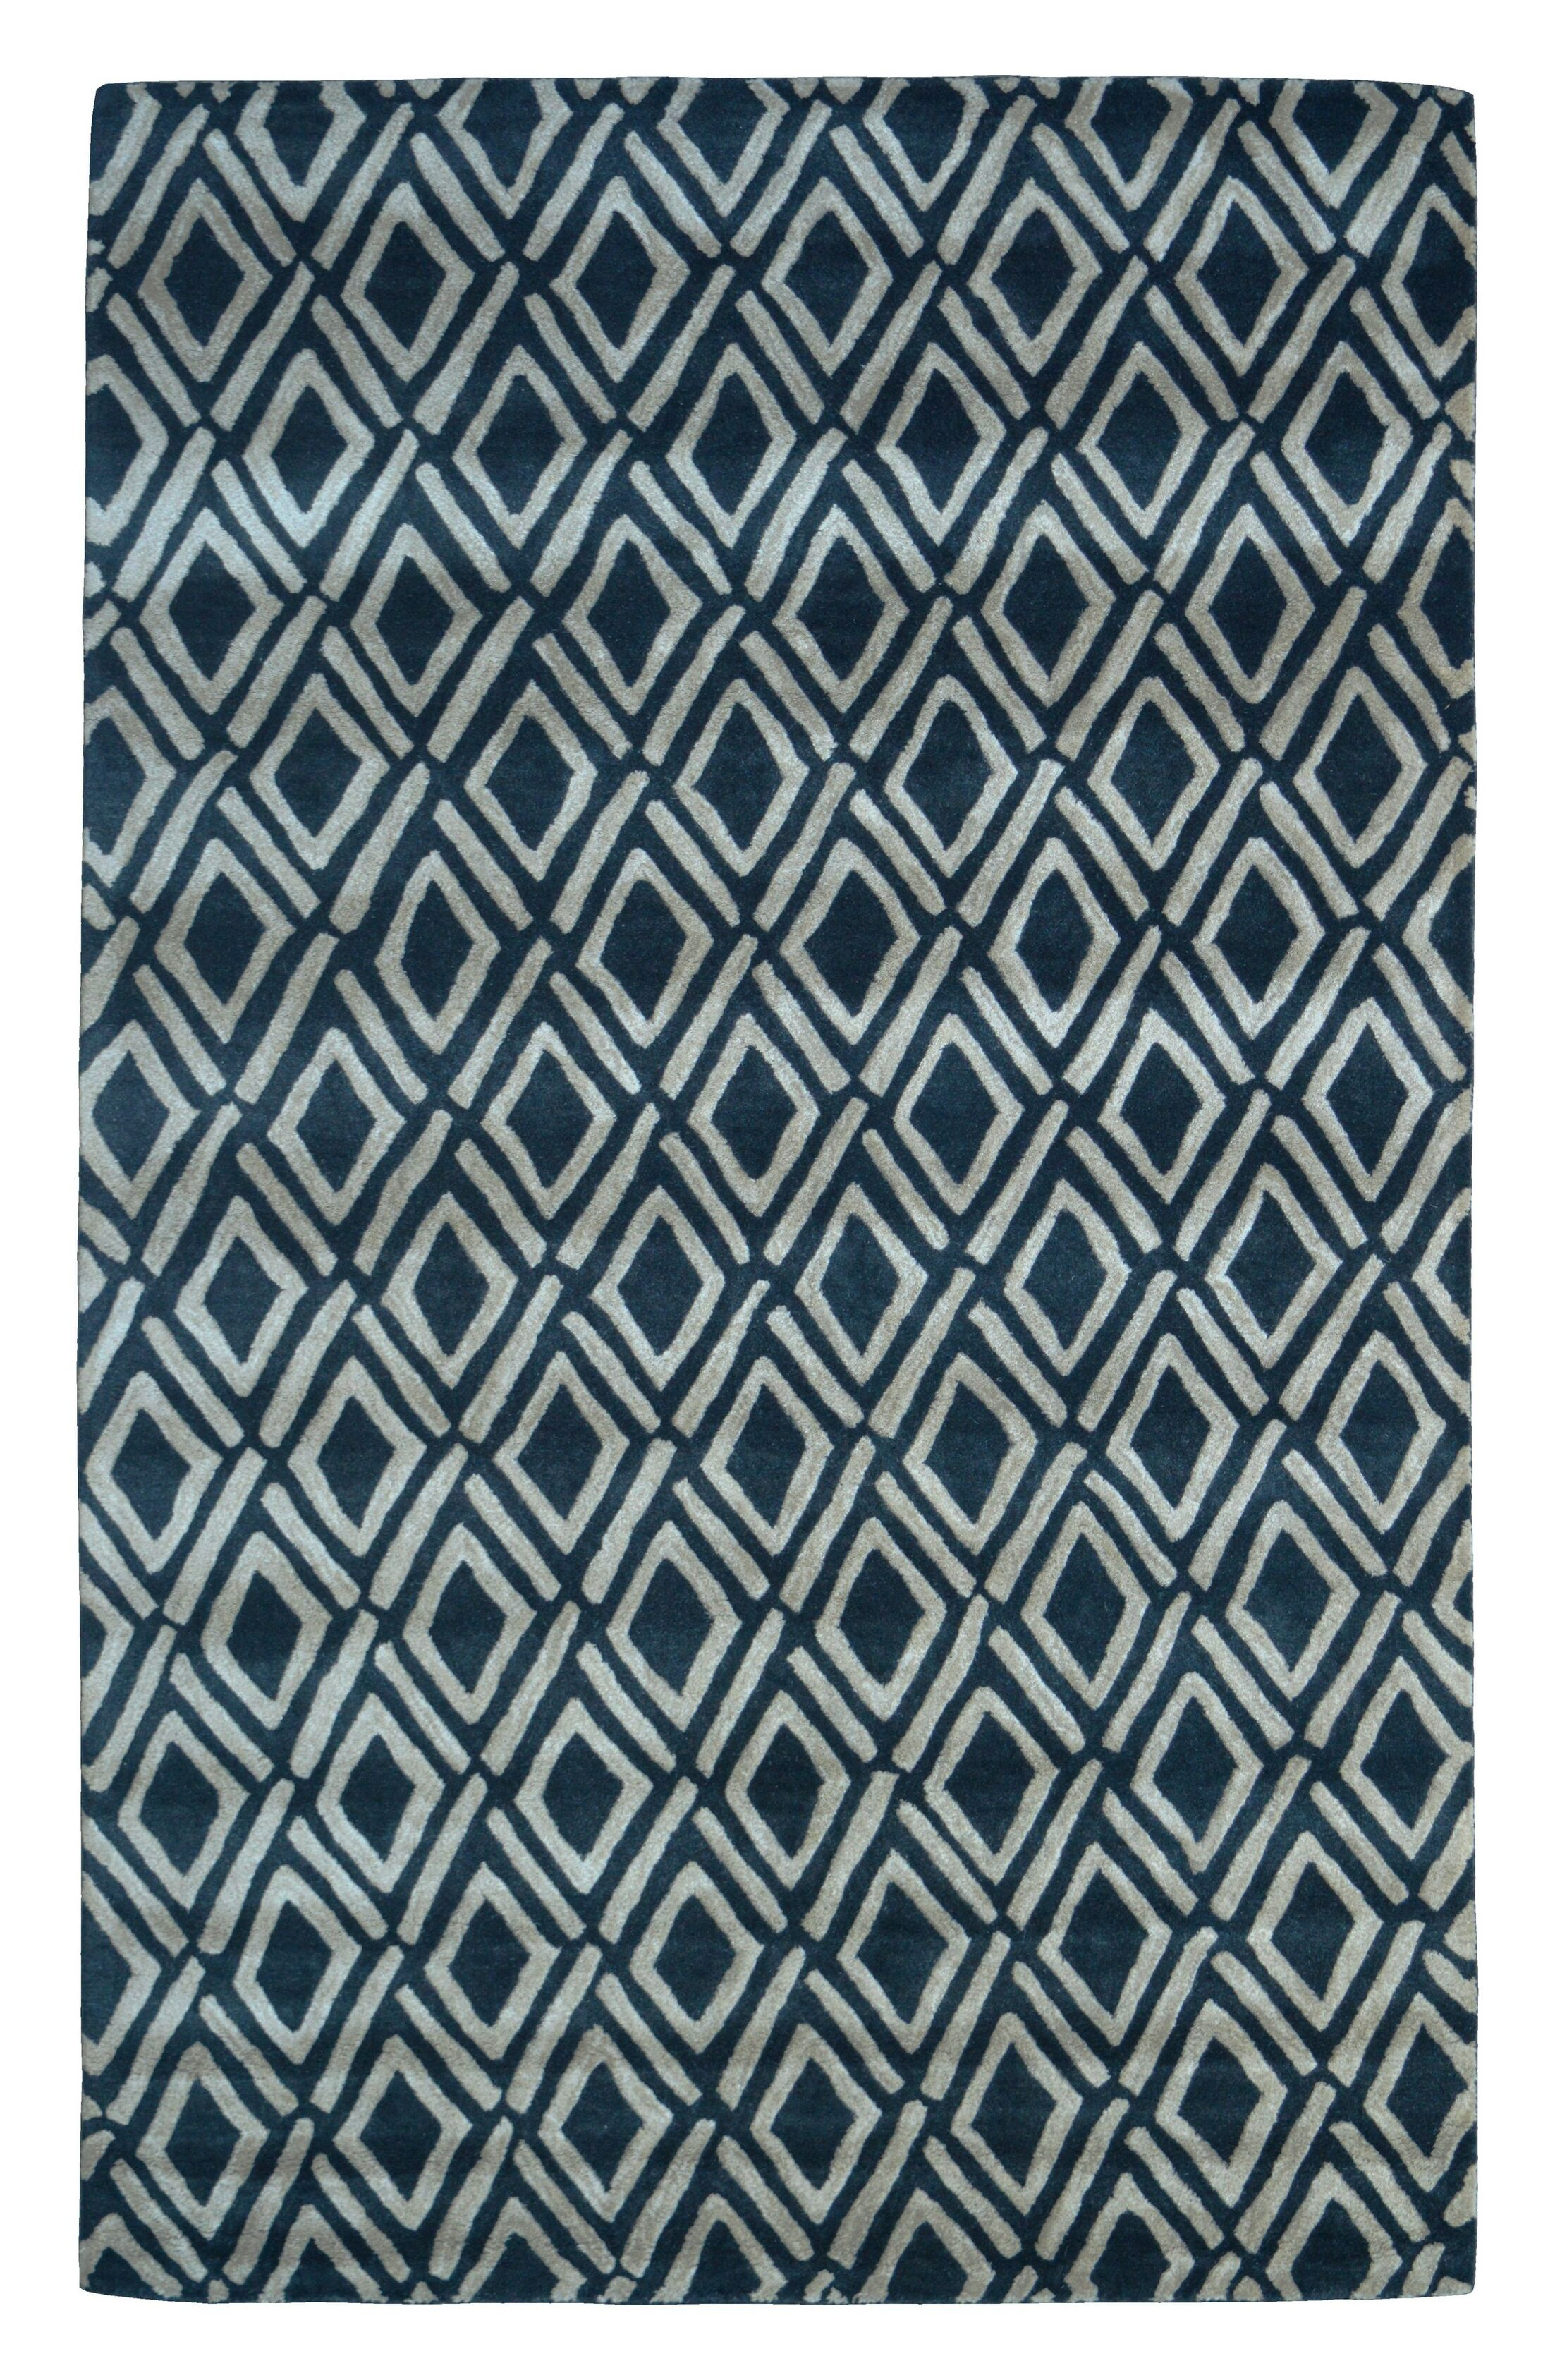 Wool Hand-Tufted Black/Ivory Area Rug Rug Size: Rectangle 5' x 8'